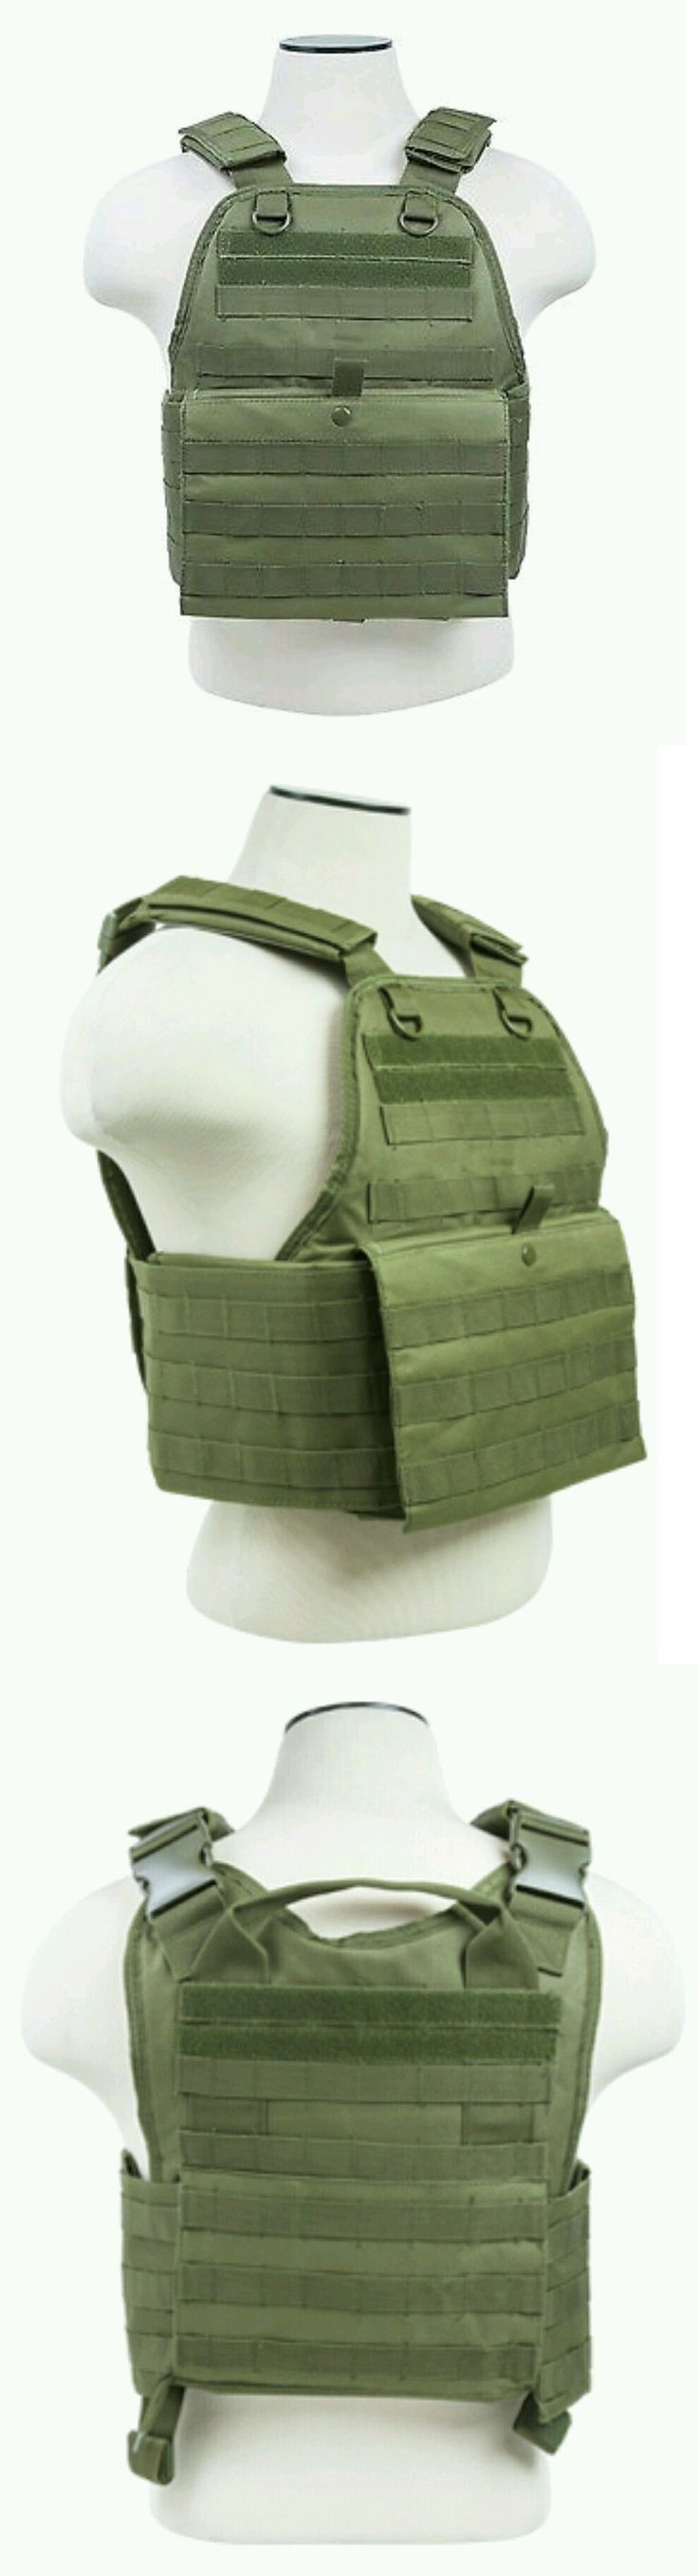 Chest Rigs and Tactical Vests 177891: Vism Tactical Molle/Pals Body Armor Plate Carrier Chest Rig Vest Operator Od Grn BUY IT NOW ONLY: $49.95